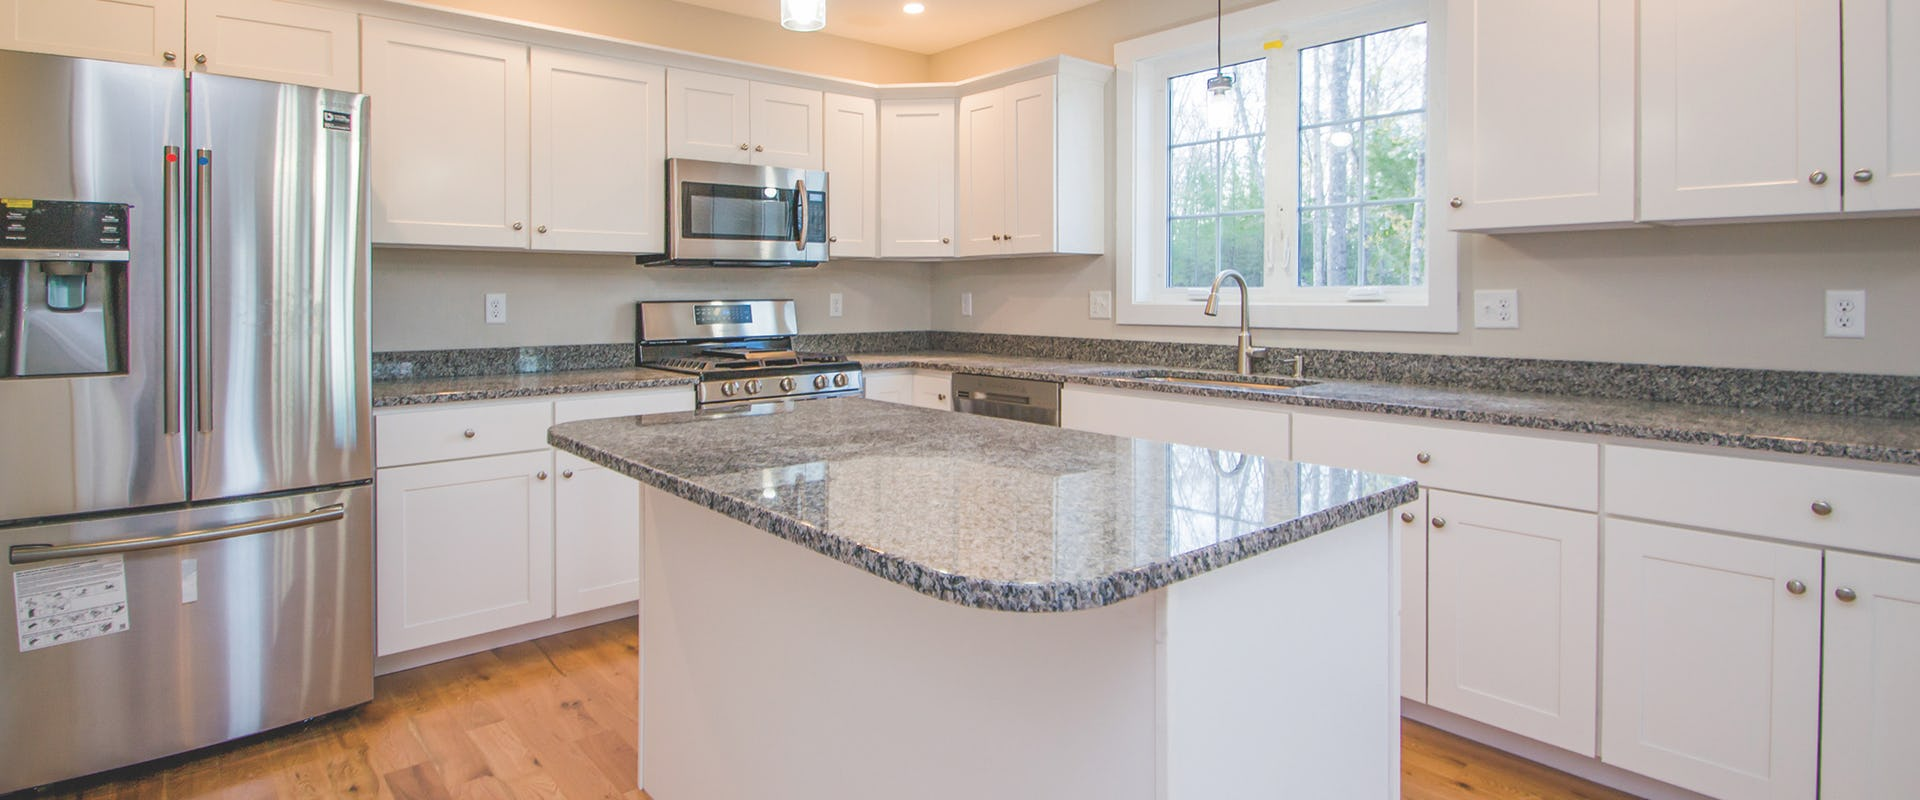 white kitchen with granite counters in new home